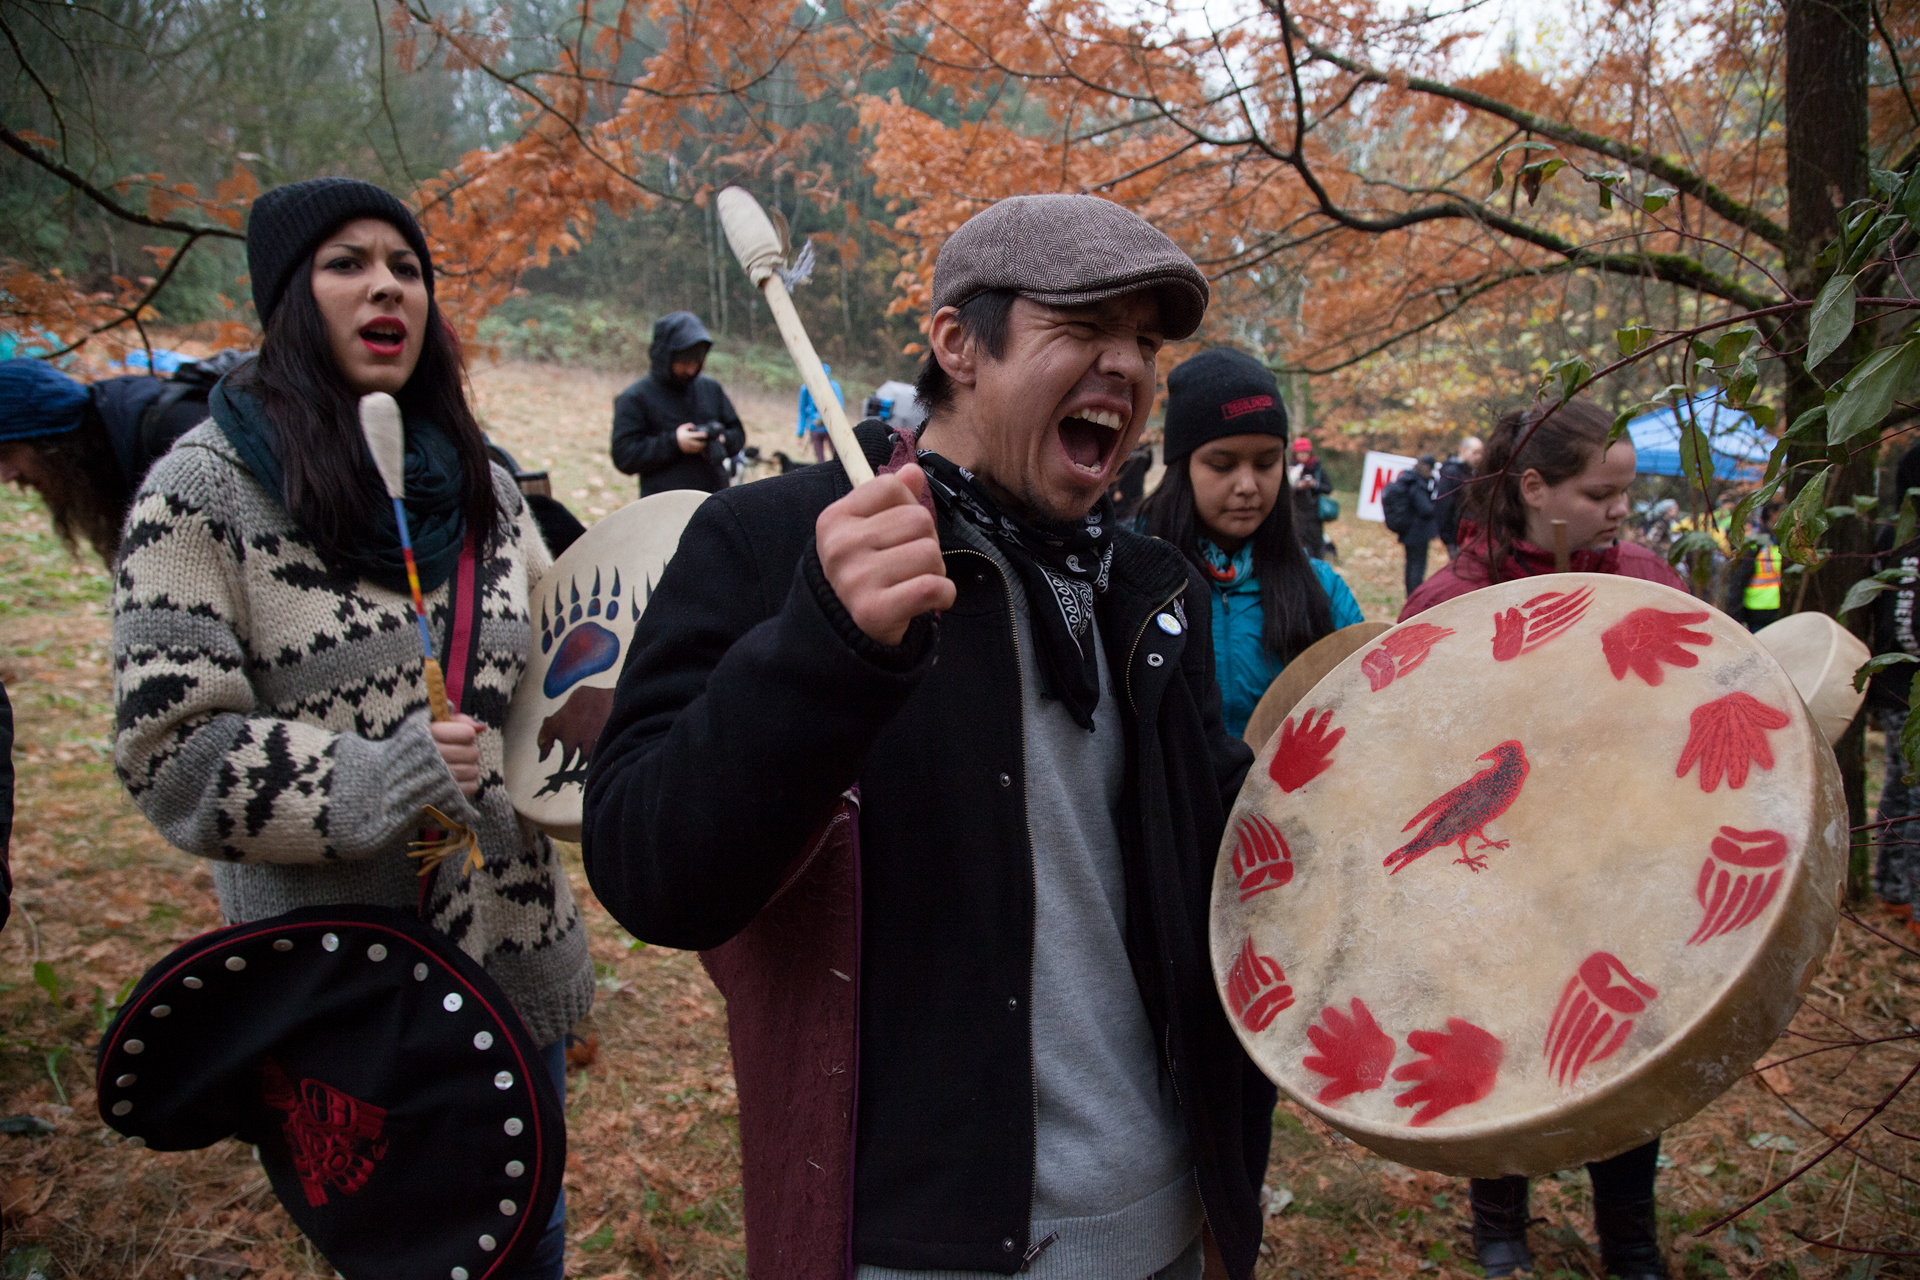 A protests began to get heated, a First Nations man begins to sing in anger of Kinder Morgan.